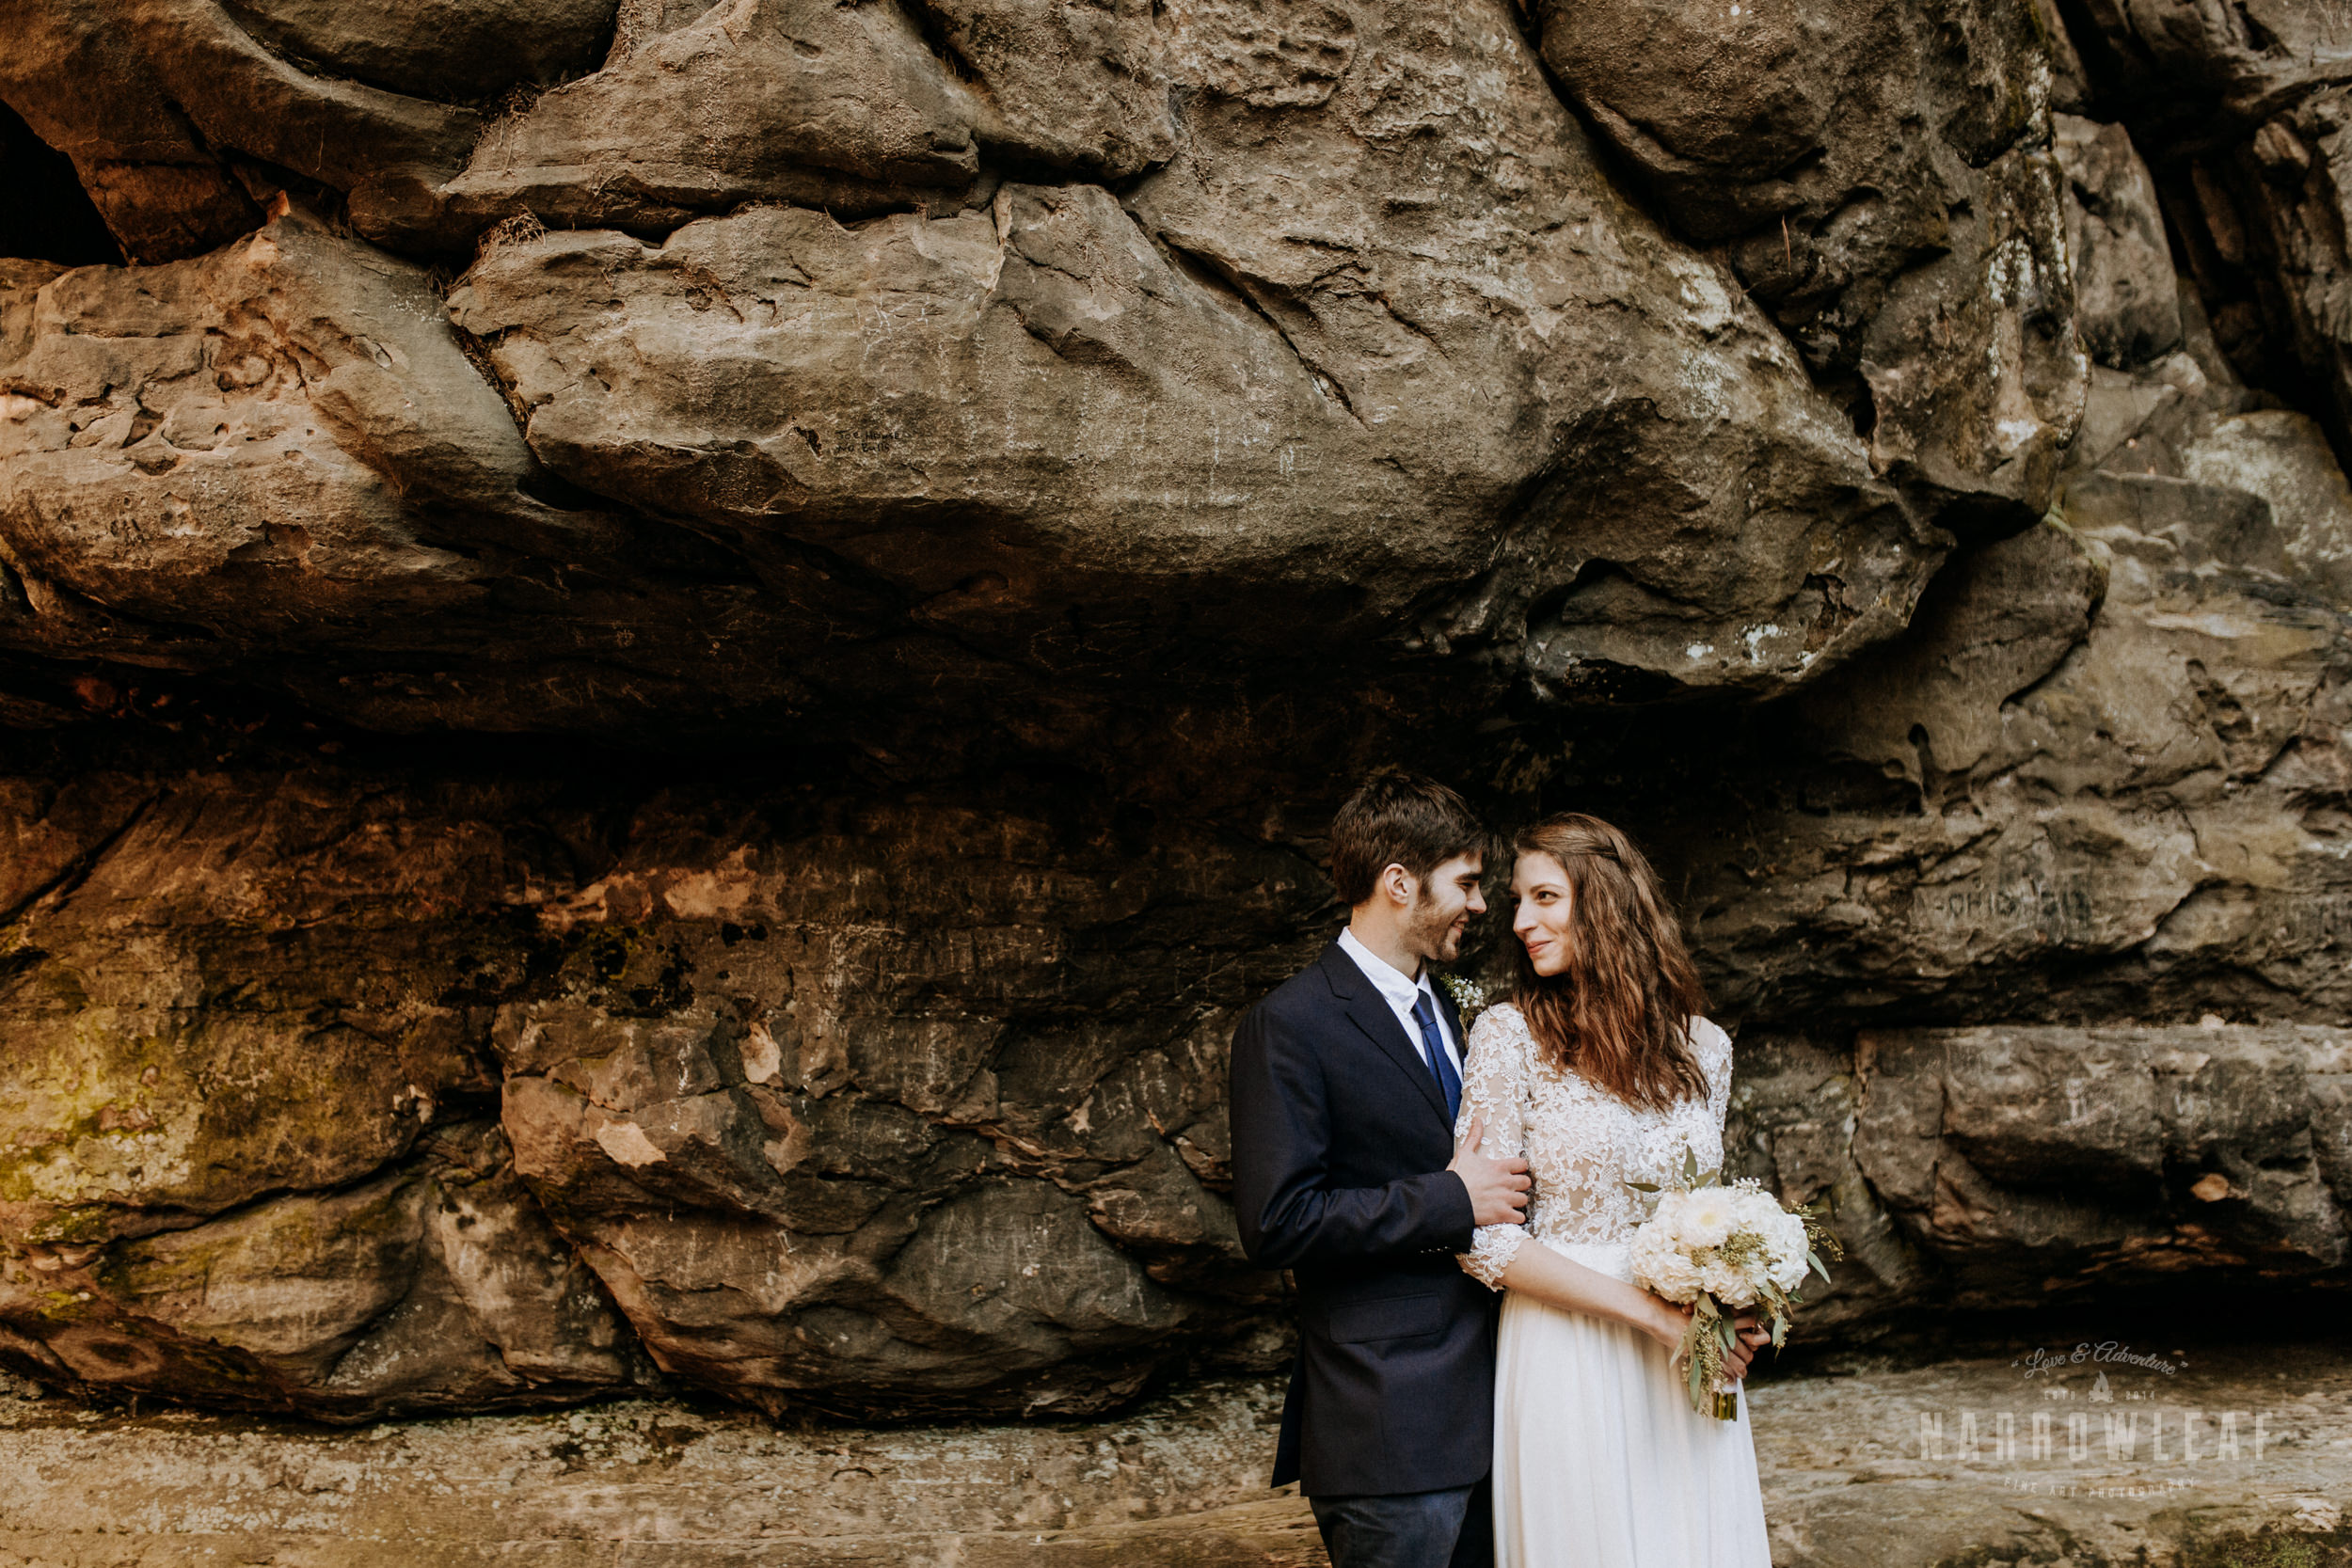 Perrot-State-Park-Baraboo-Wisconsin-Fall-adventure-hiking-Elopement-Narrowleaf_Love_and_Adventure_Photography-0397.jpg